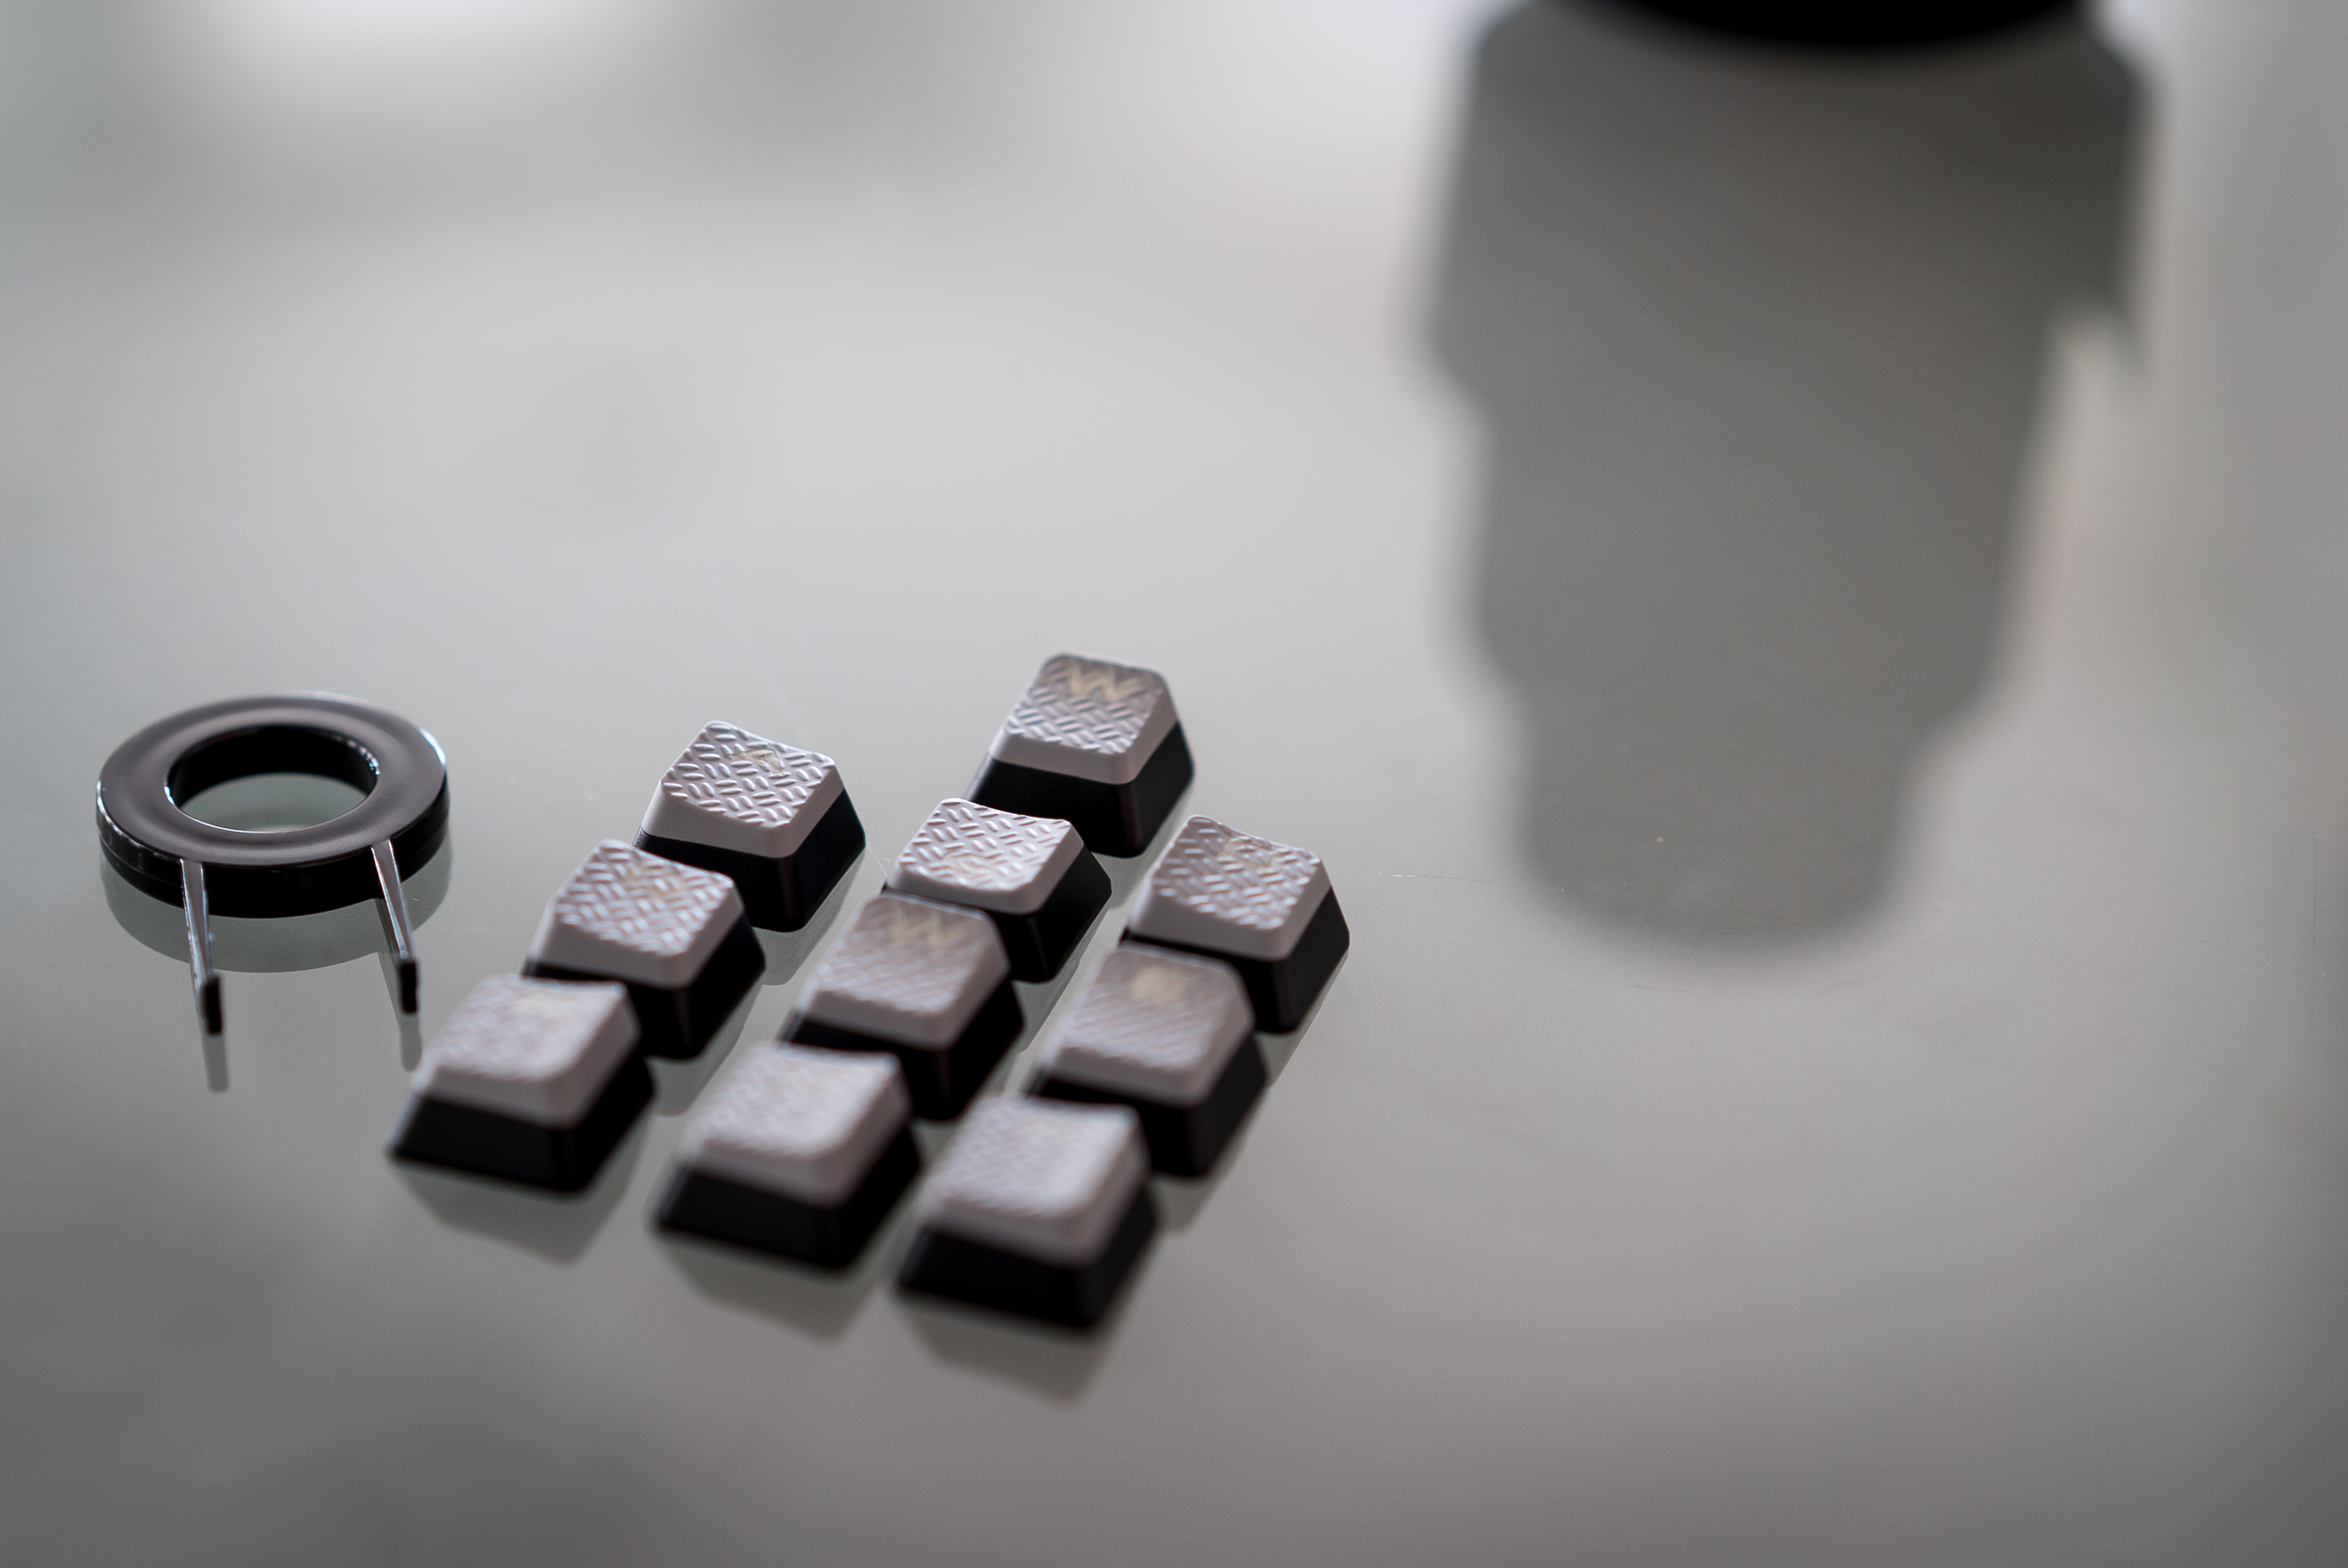 Corsair bundles extra textured keycaps for common gaming keys